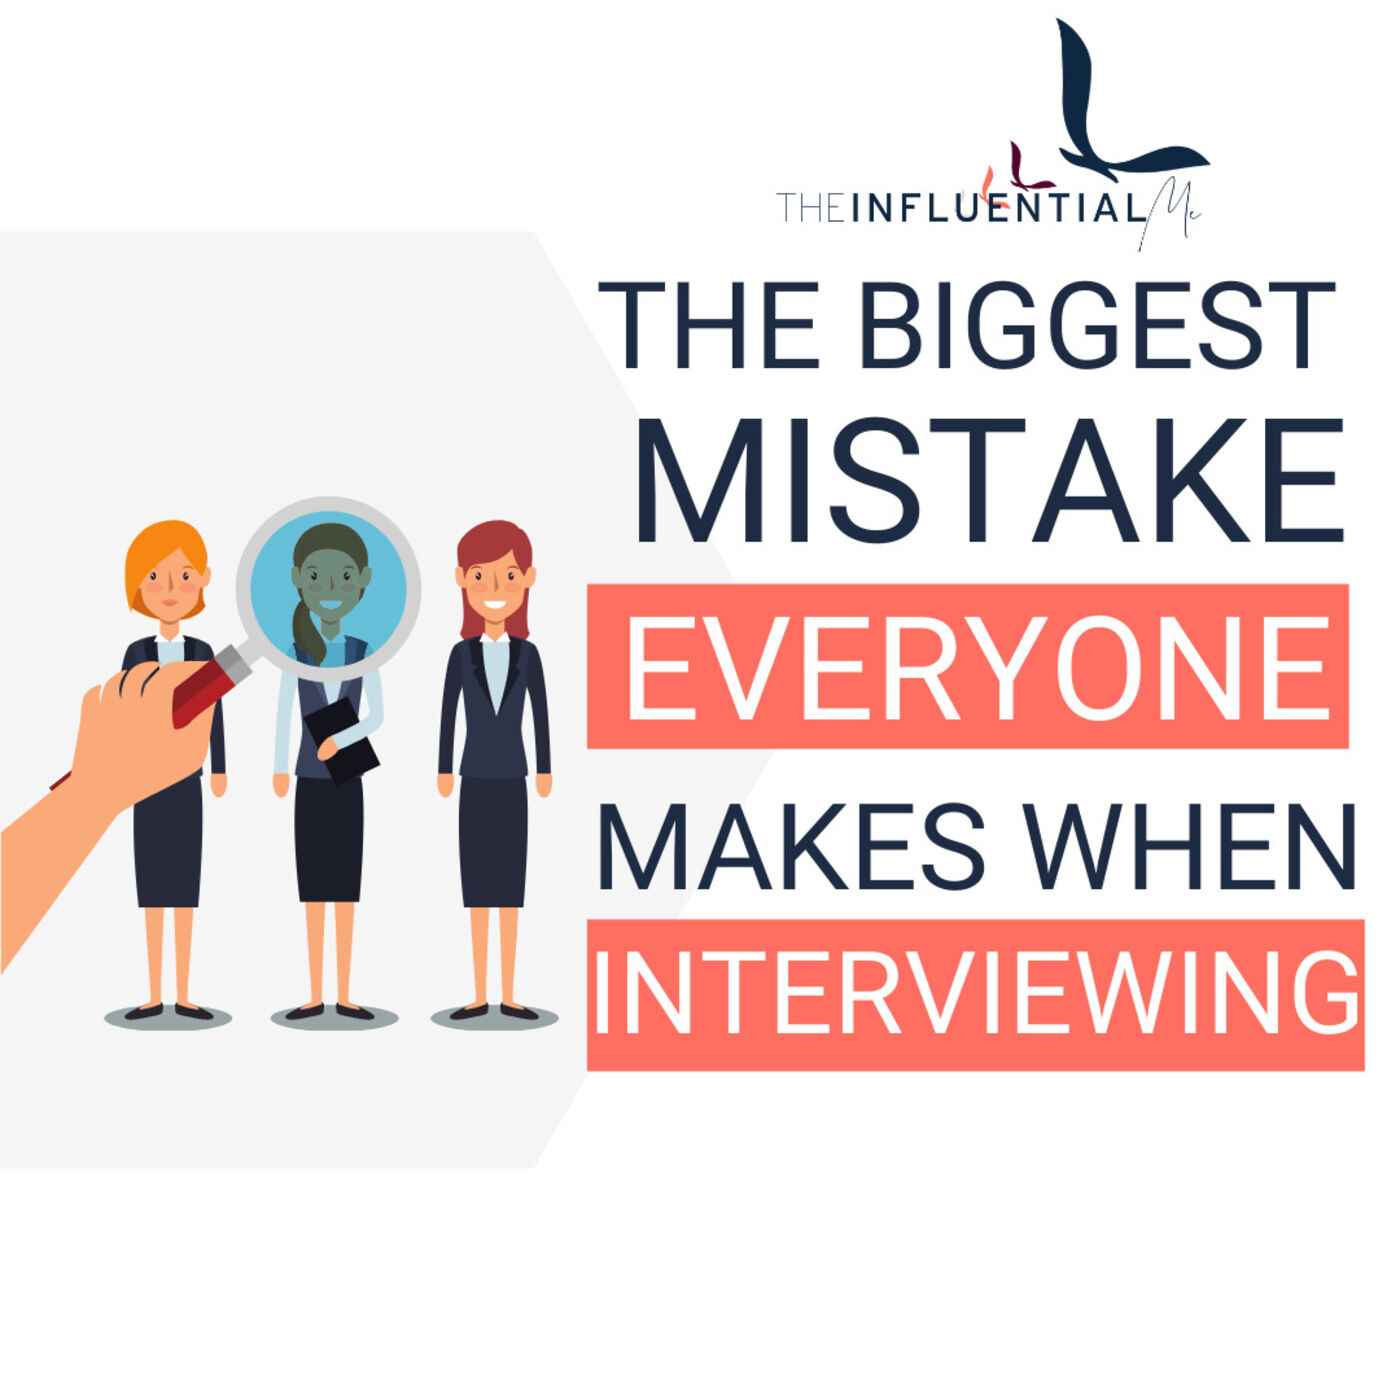 The biggest mistake EVERYONE makes when interviewing